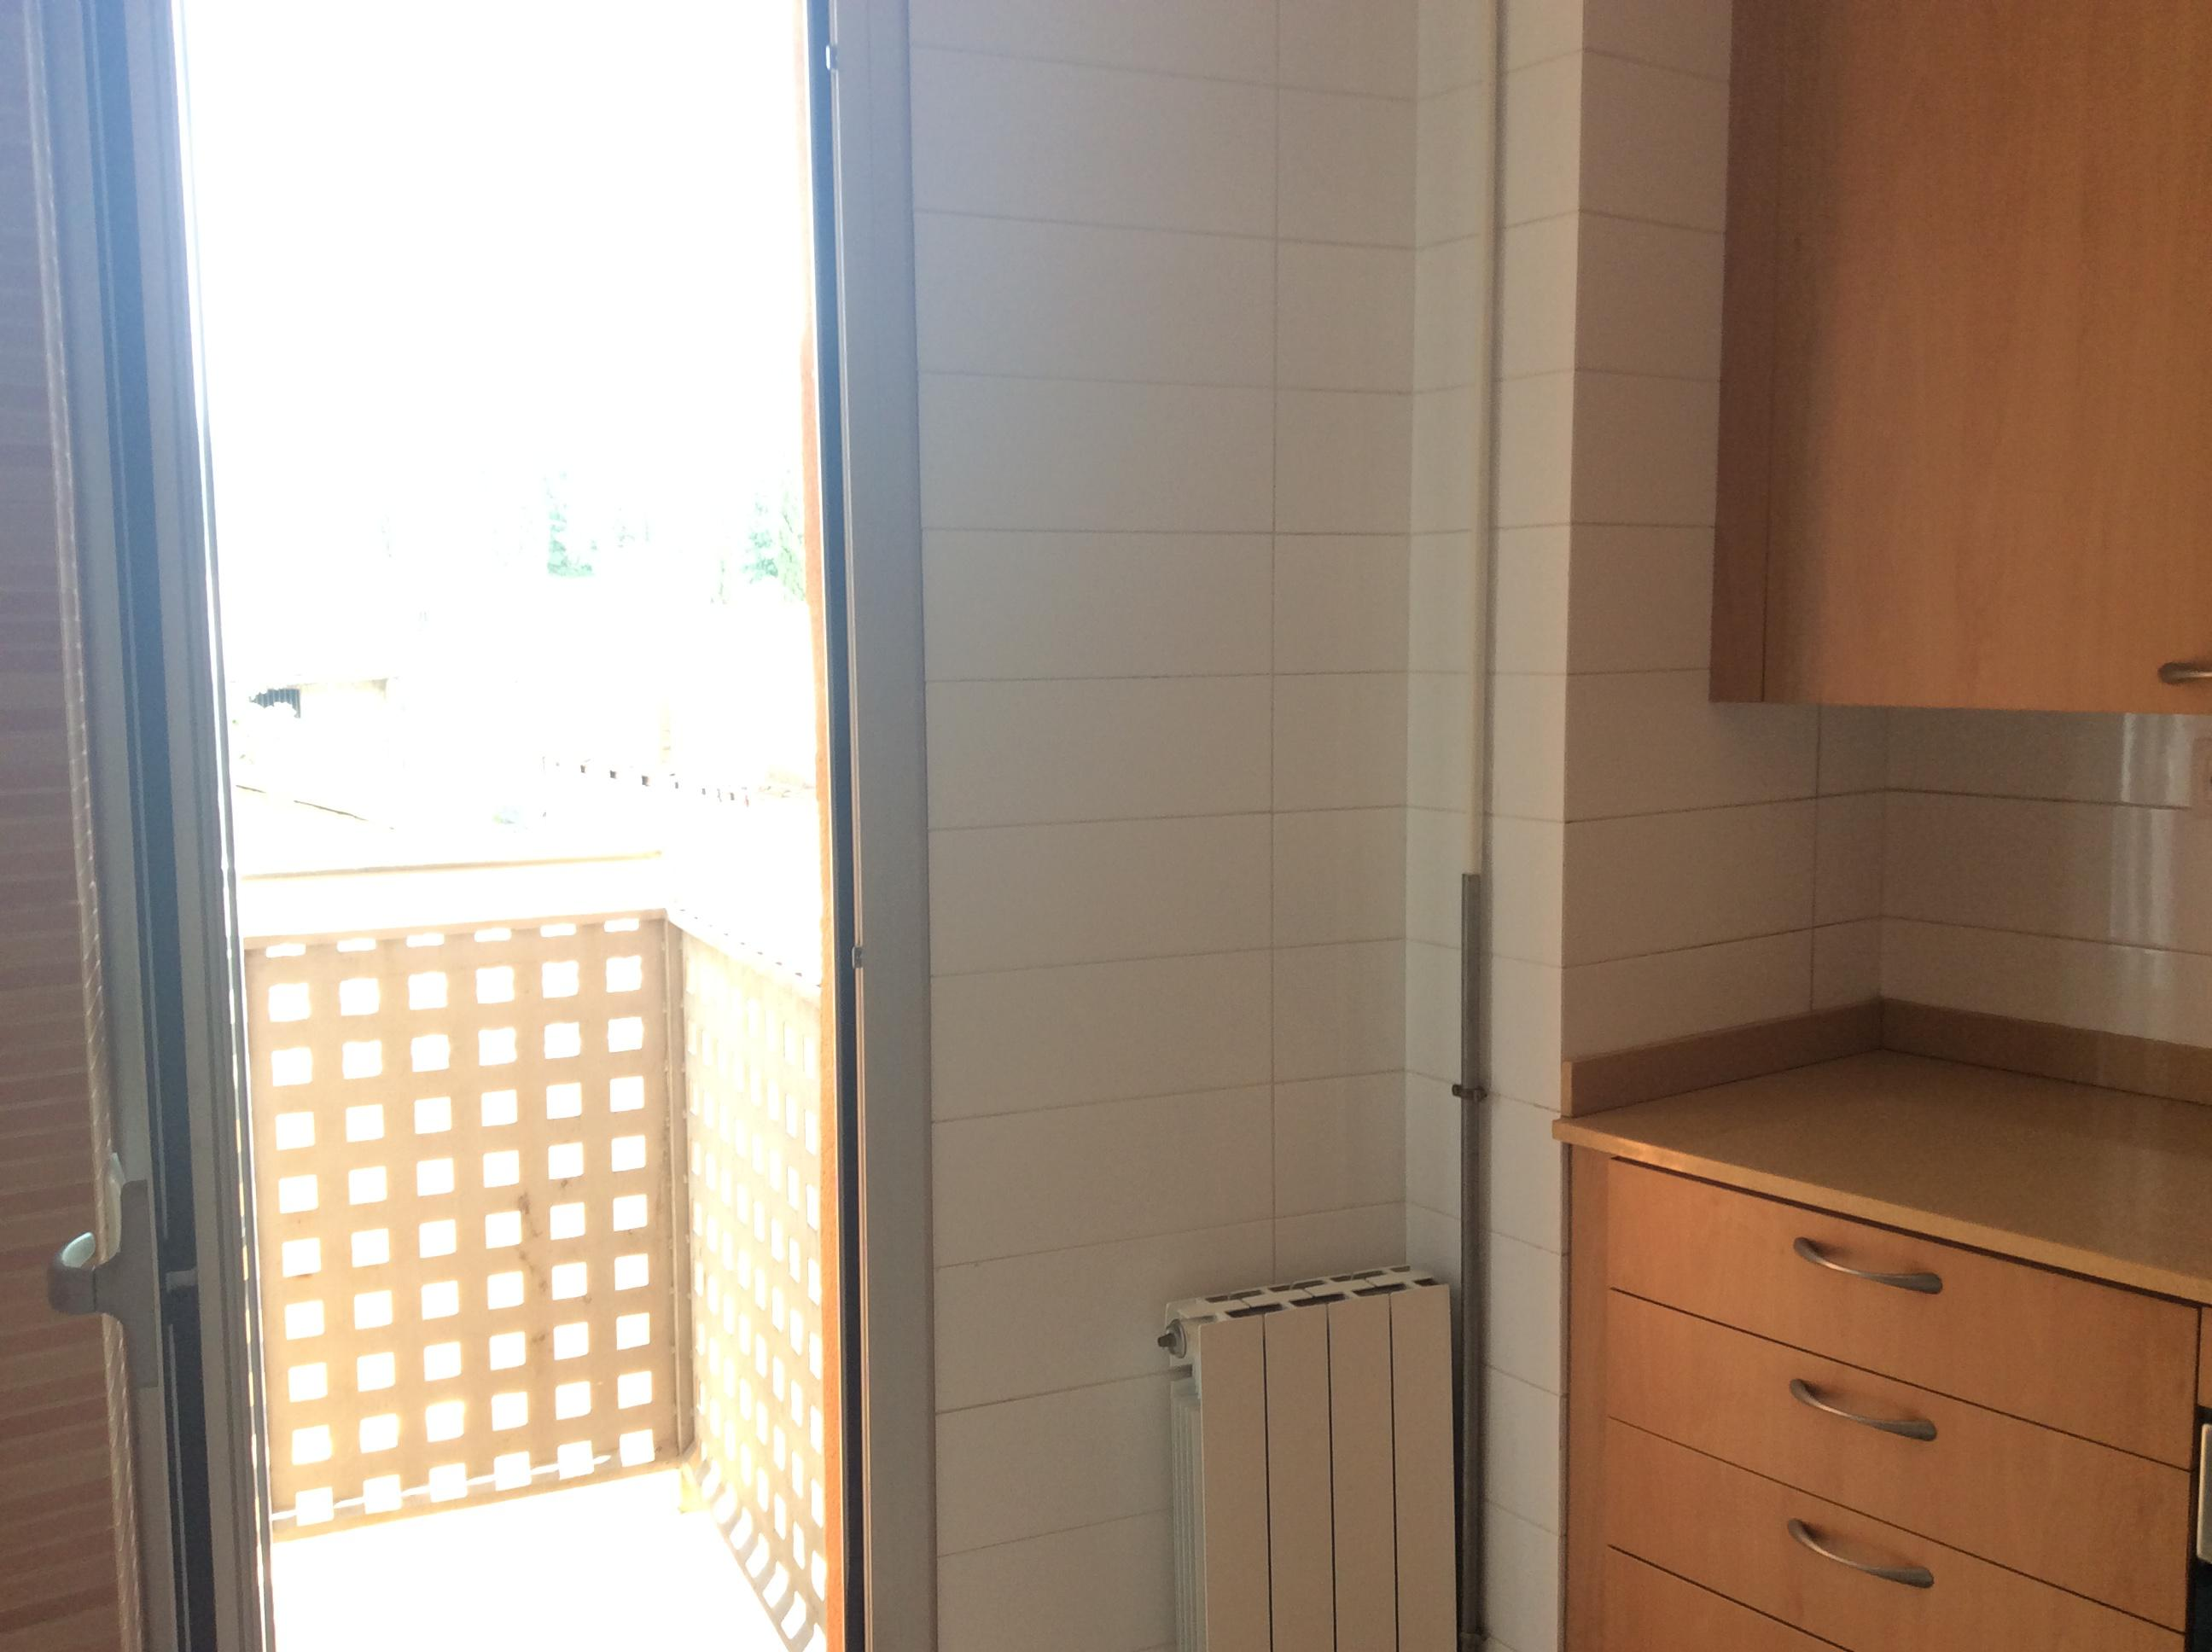 241109 Flat for sale in Sants-Montjuïc, La Marina de Port 9